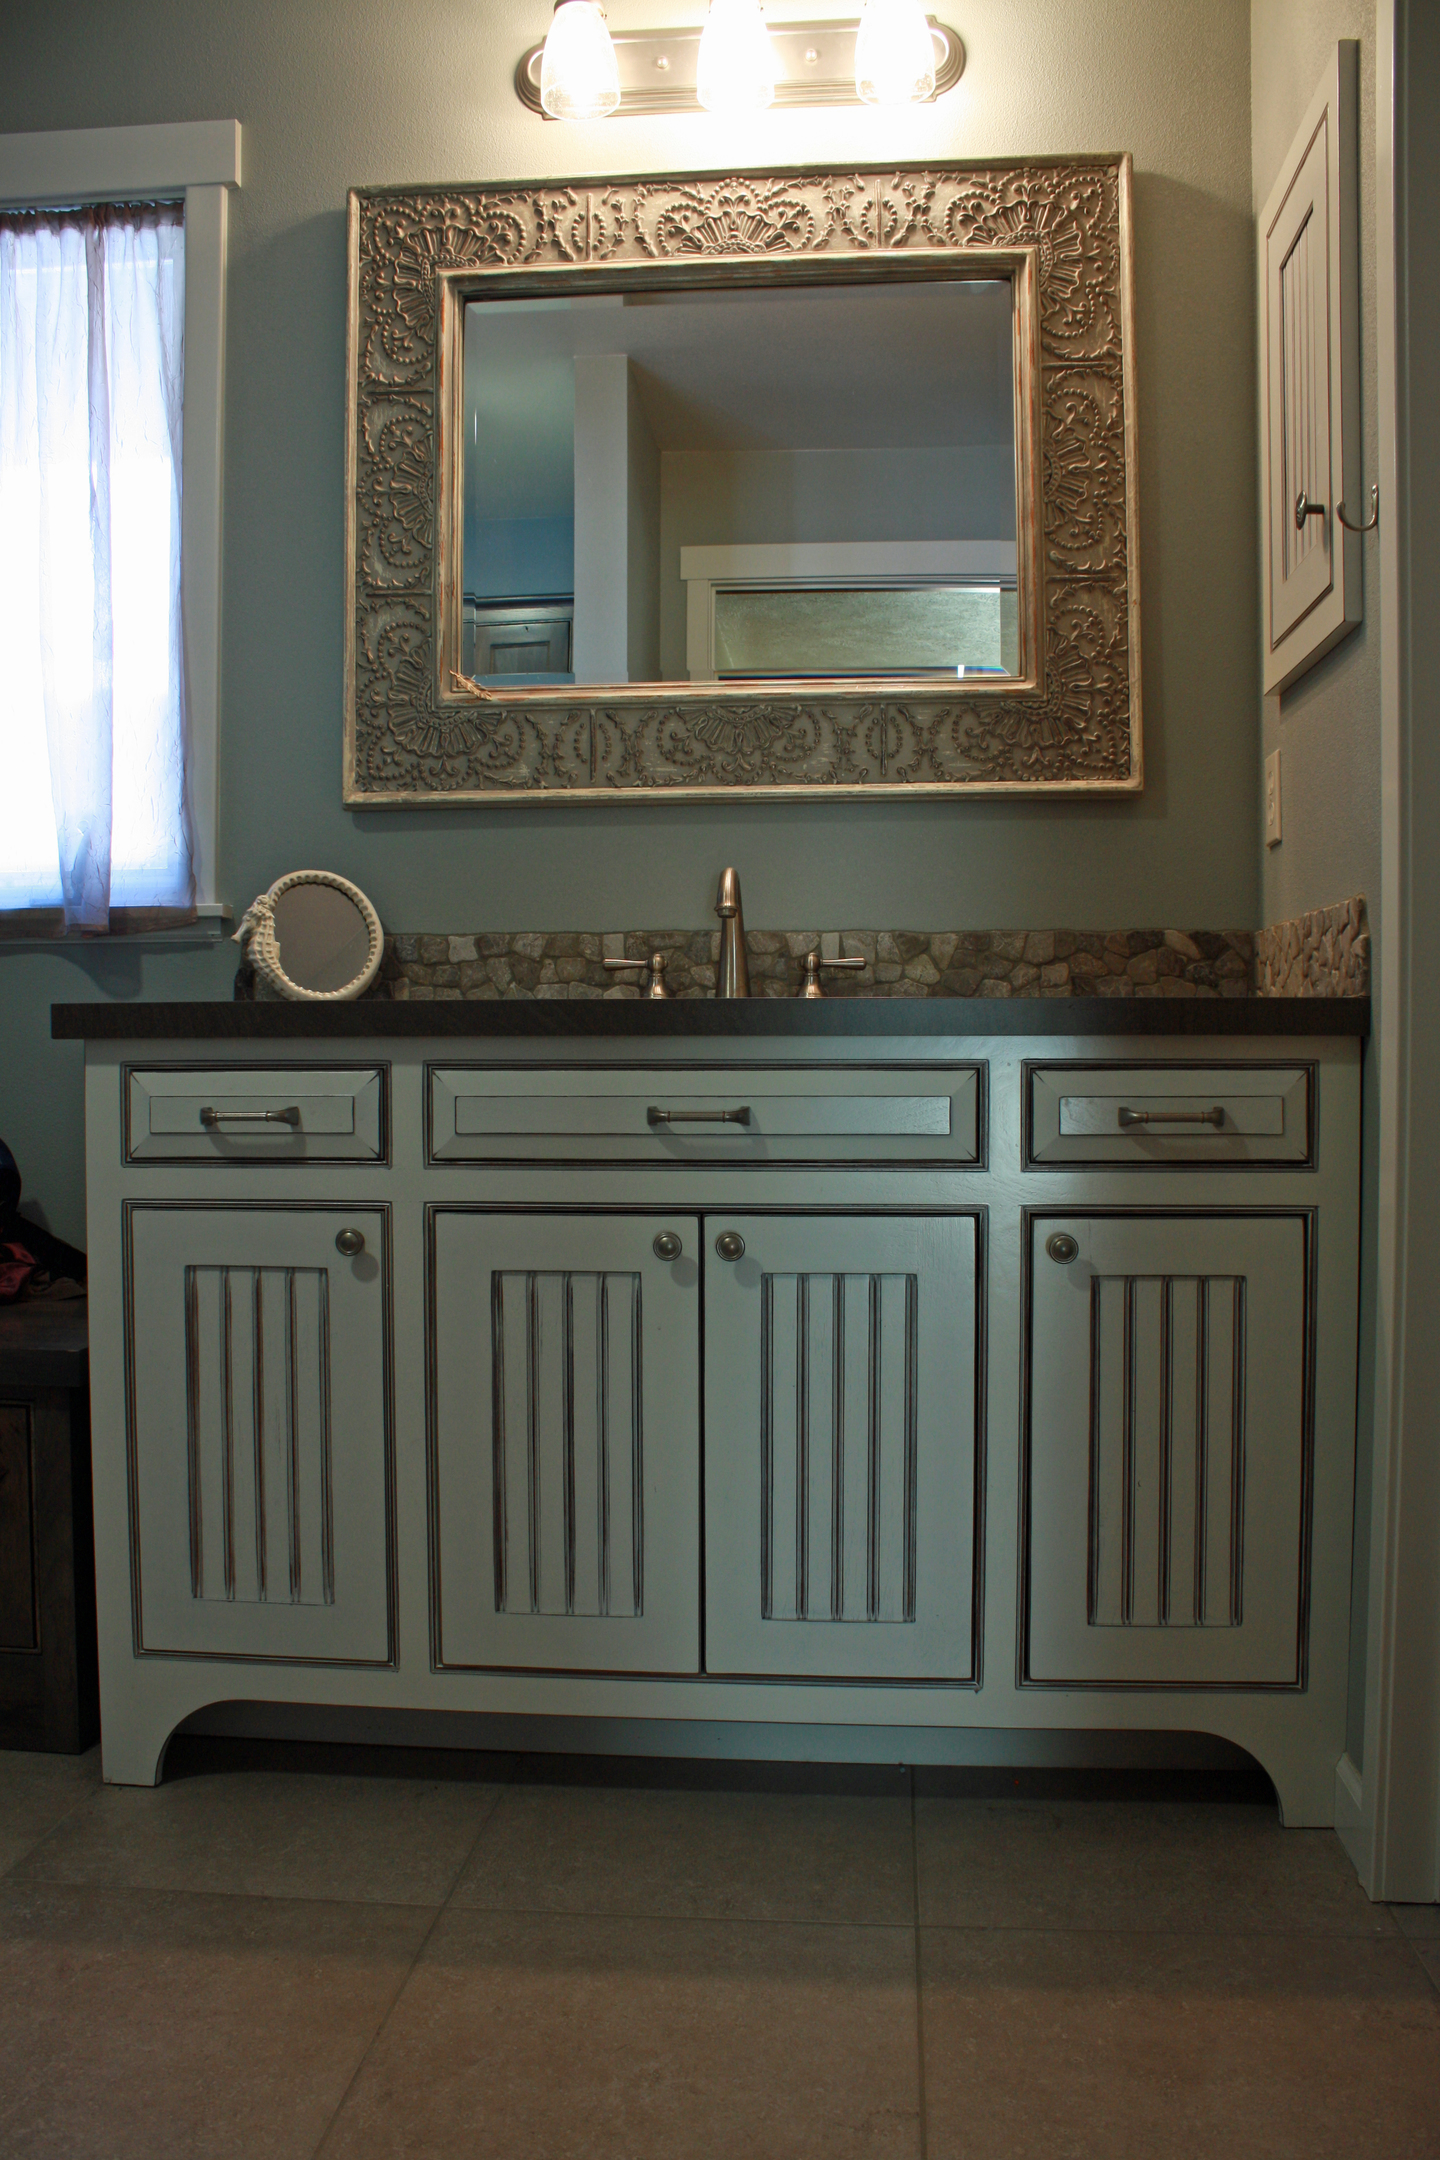 Thumb Vanity Traditional Style Painted With Glaze Wainscot Panel Flush  Mount Medicine Cabinet Arched Toekick